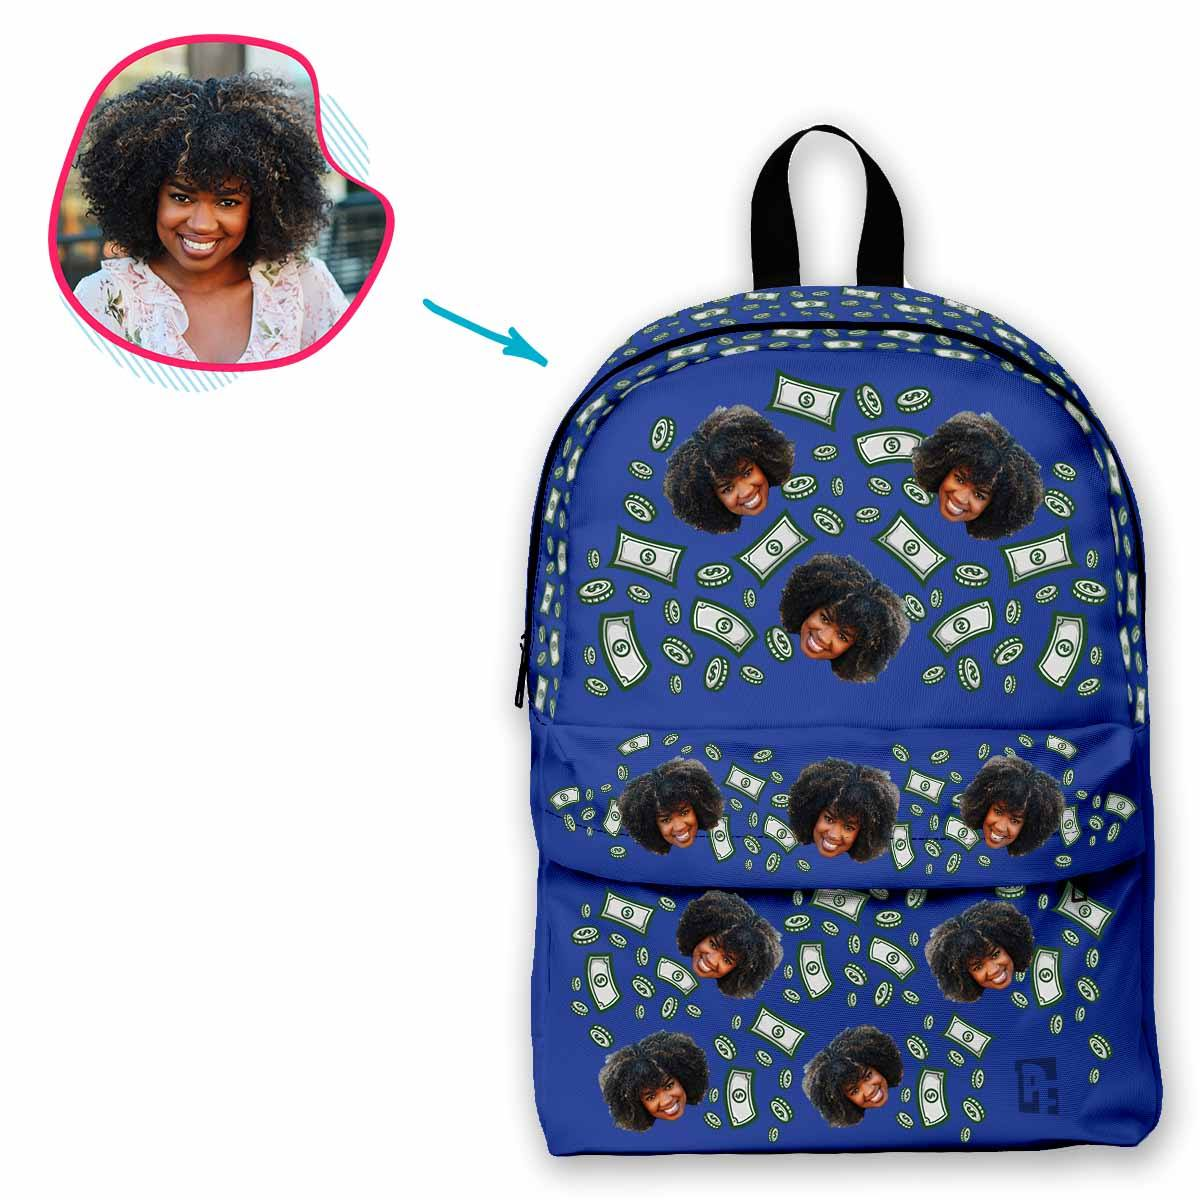 darkblue Money classic backpack personalized with photo of face printed on it